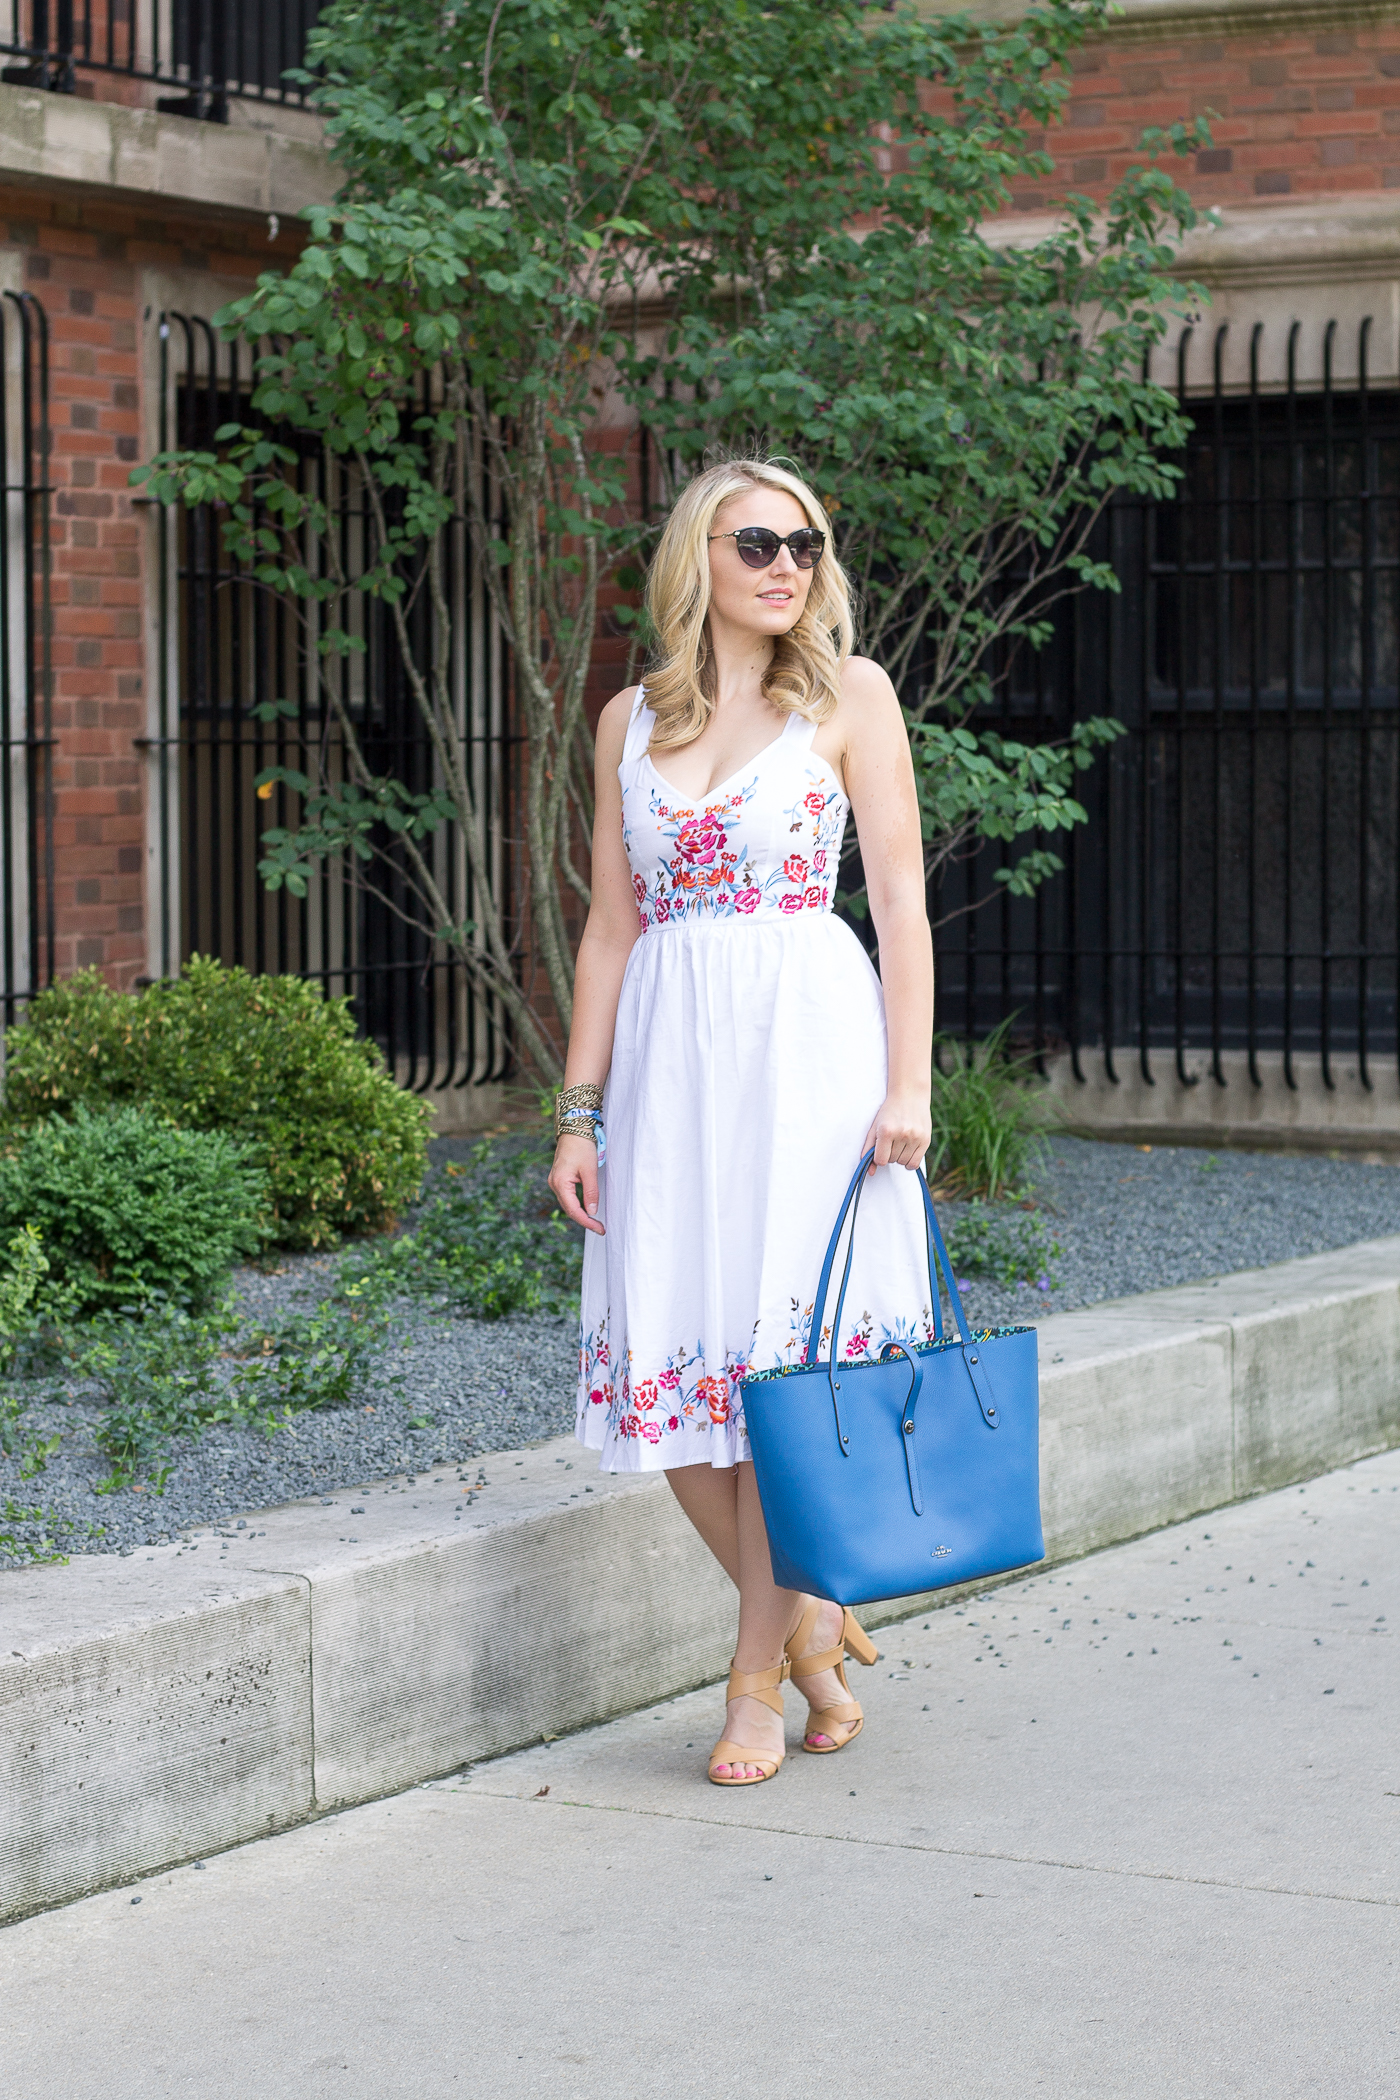 An ASOS white midi dress with floral embroidery for under $100